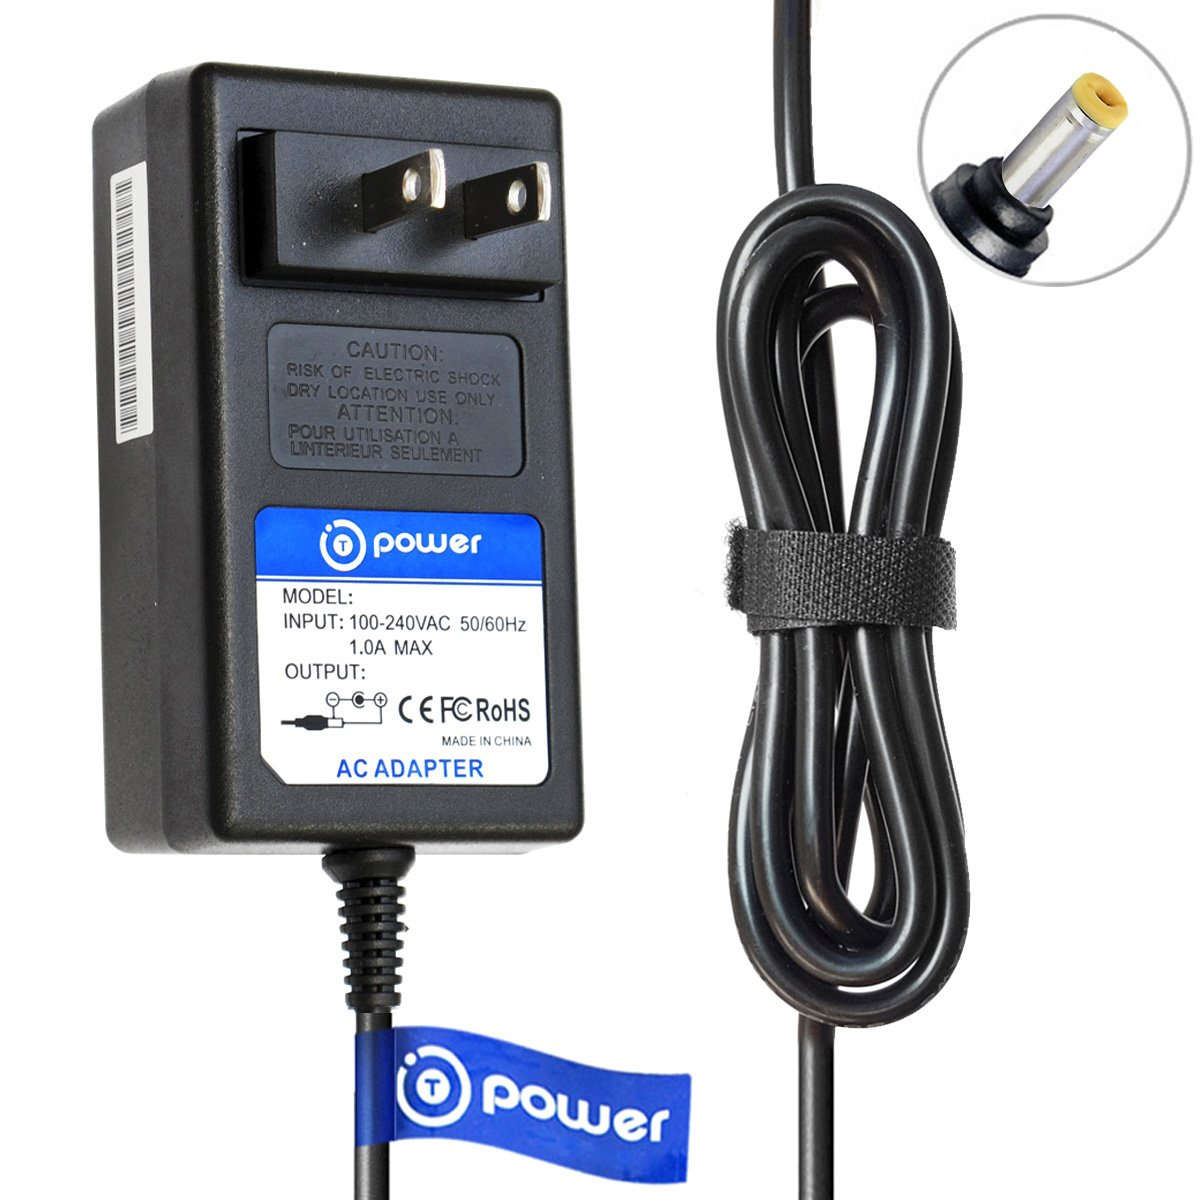 T POWER 12V DC Ac Dc Adapter Charger for Casio AD-12MLA U AD-12MLA U AD-12MLA(U) AD12M3 Keyboard Replacement switching power supply cord